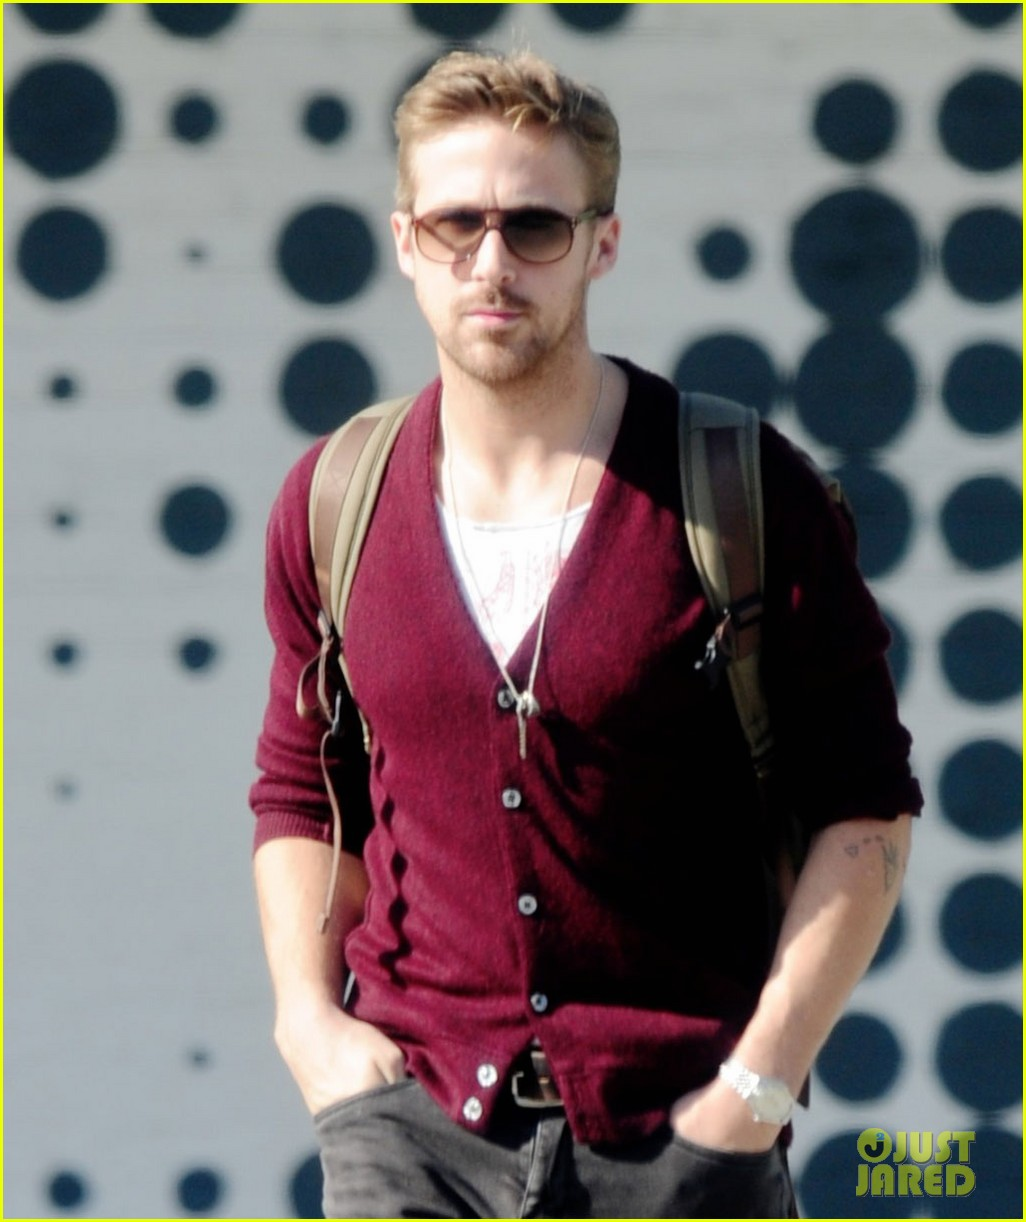 Celeb Diary: Ryan Gosling in Los Angeles